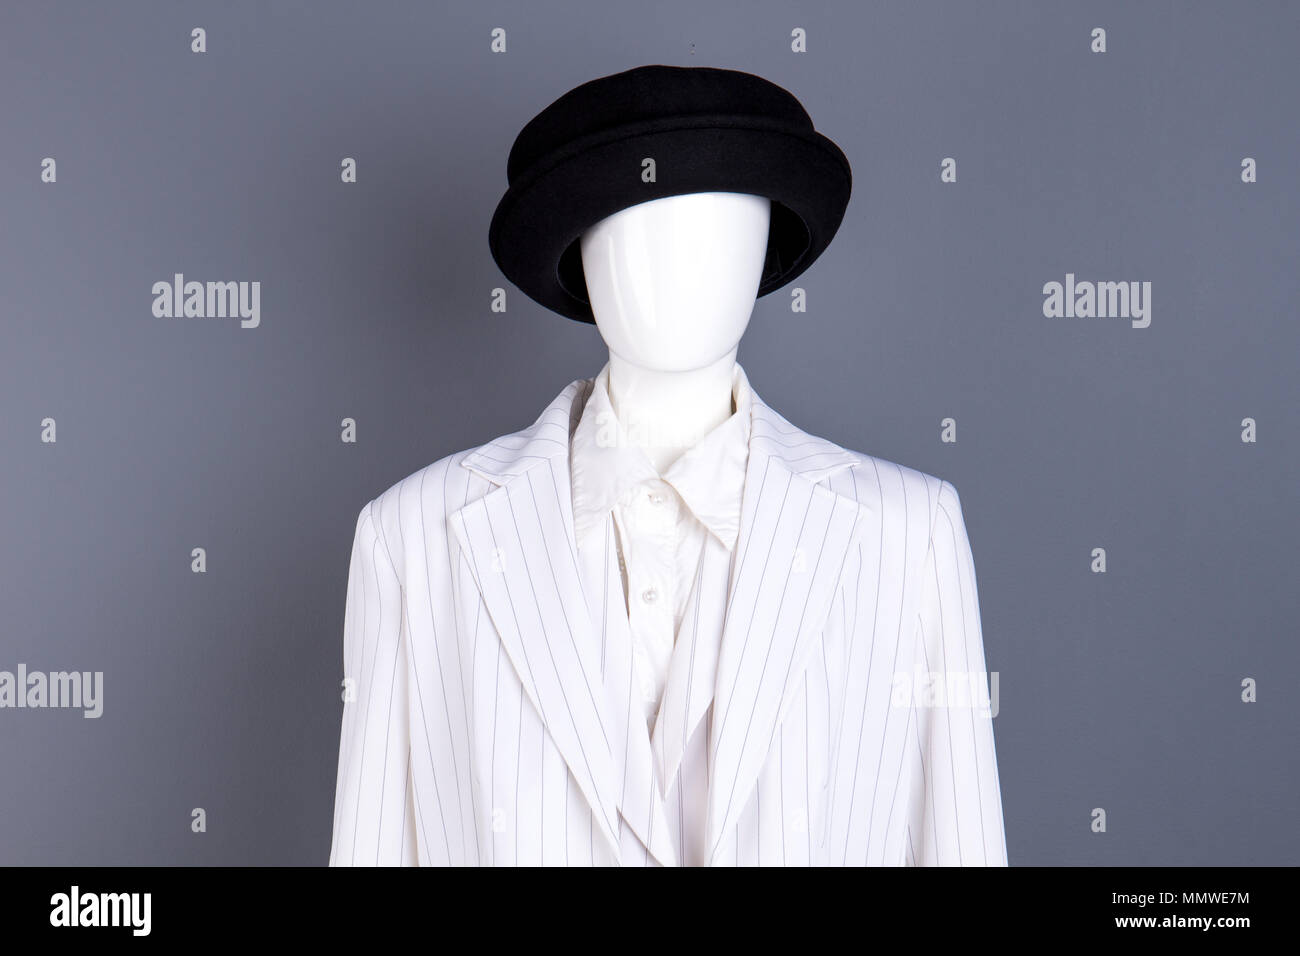 8b79e61f Blazer And Hat Stock Photos & Blazer And Hat Stock Images - Alamy